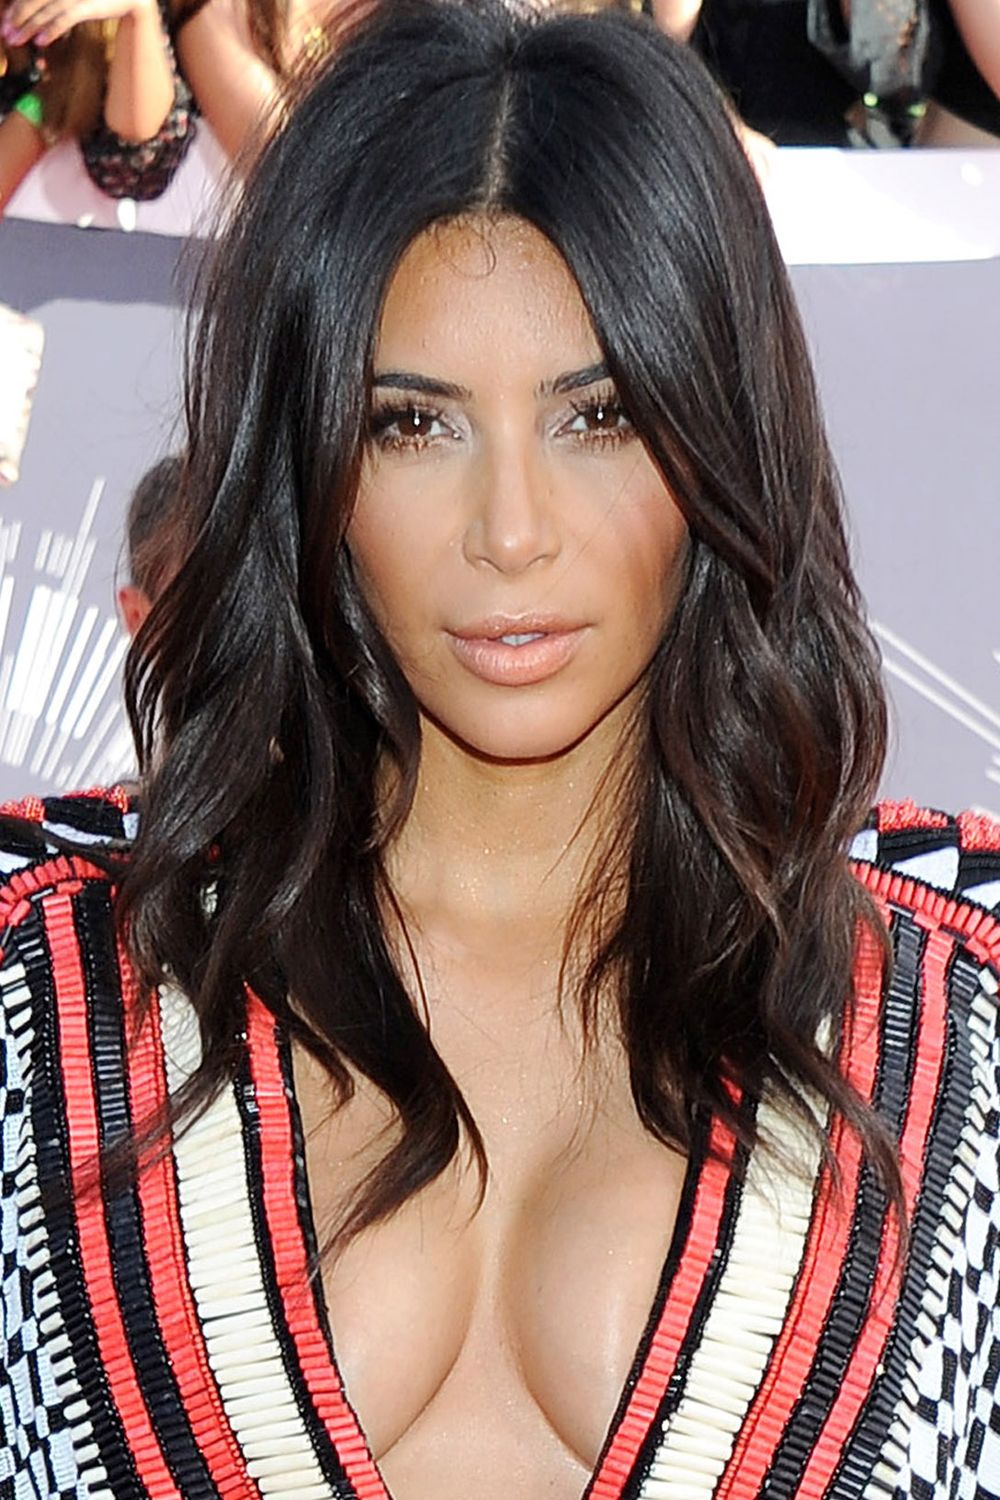 Kim Kardashian Chop Chop And Inspiration On Pinterest